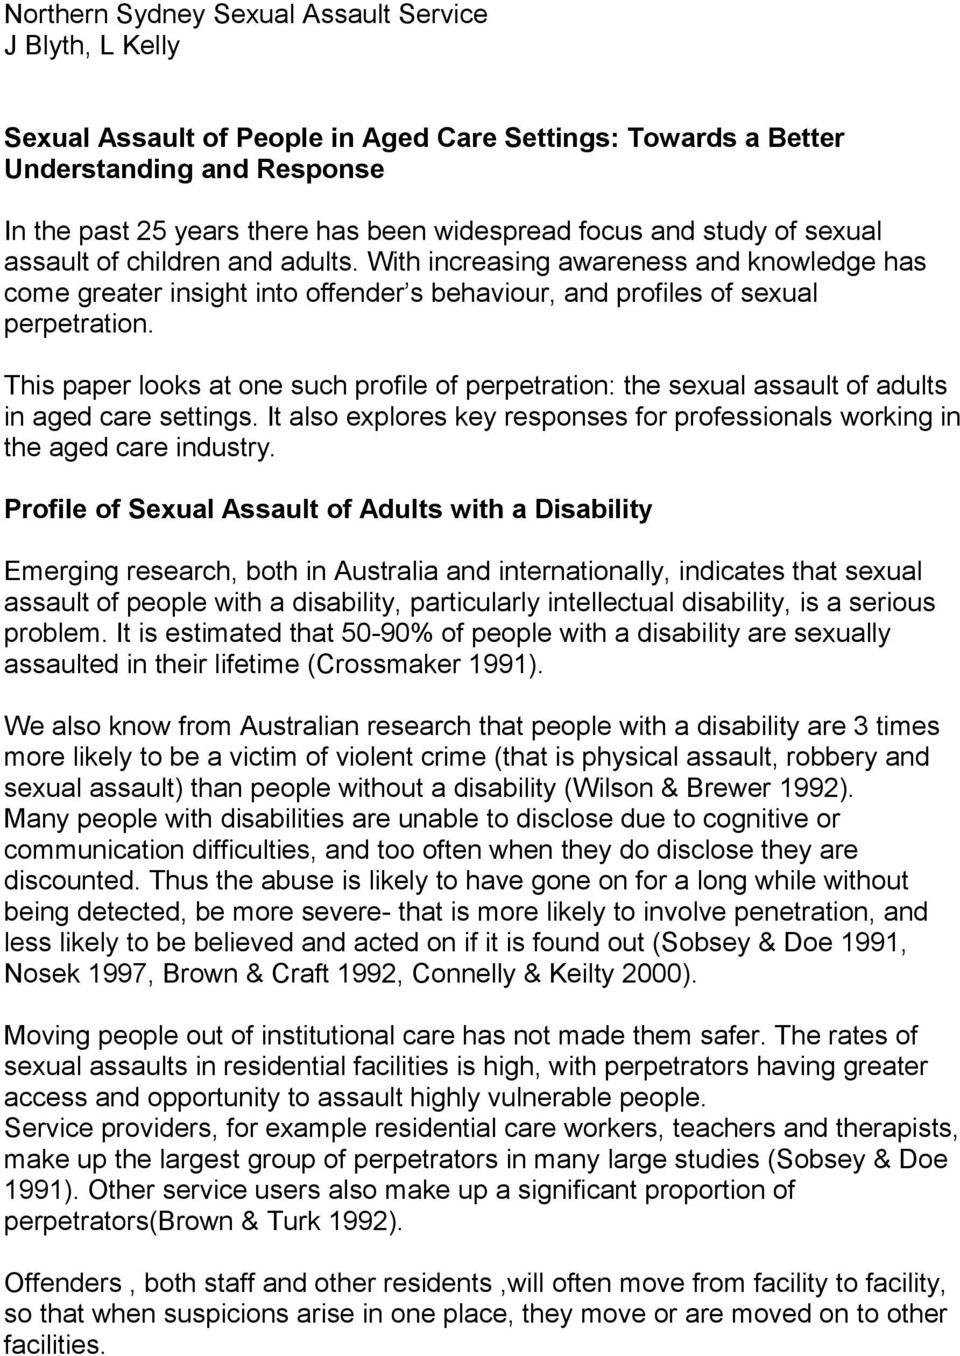 This paper looks at one such profile of perpetration: the sexual assault of adults in aged care settings. It also explores key responses for professionals working in the aged care industry.